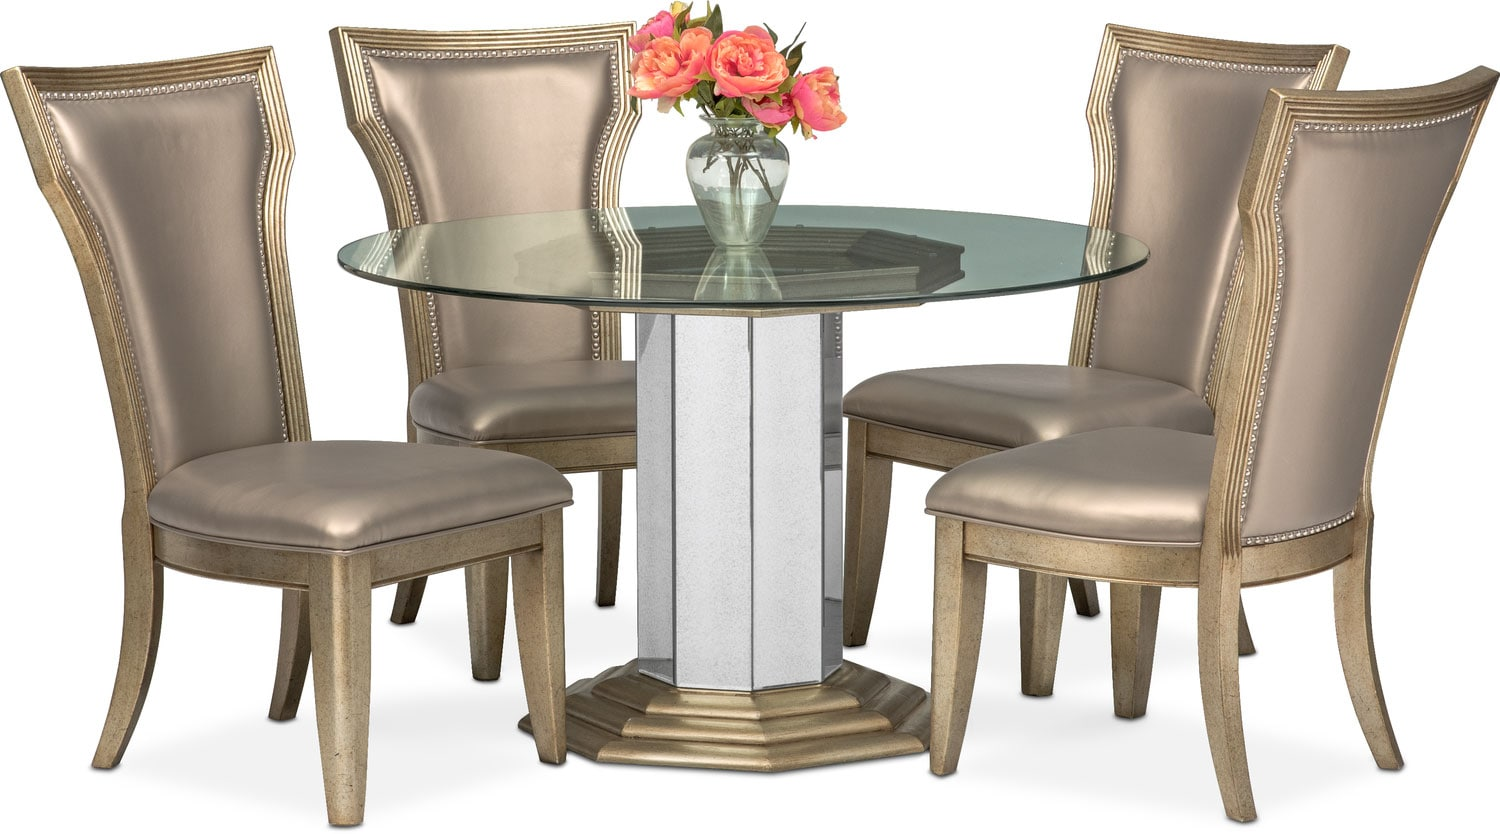 angelina round table and 4 side chairs metallic